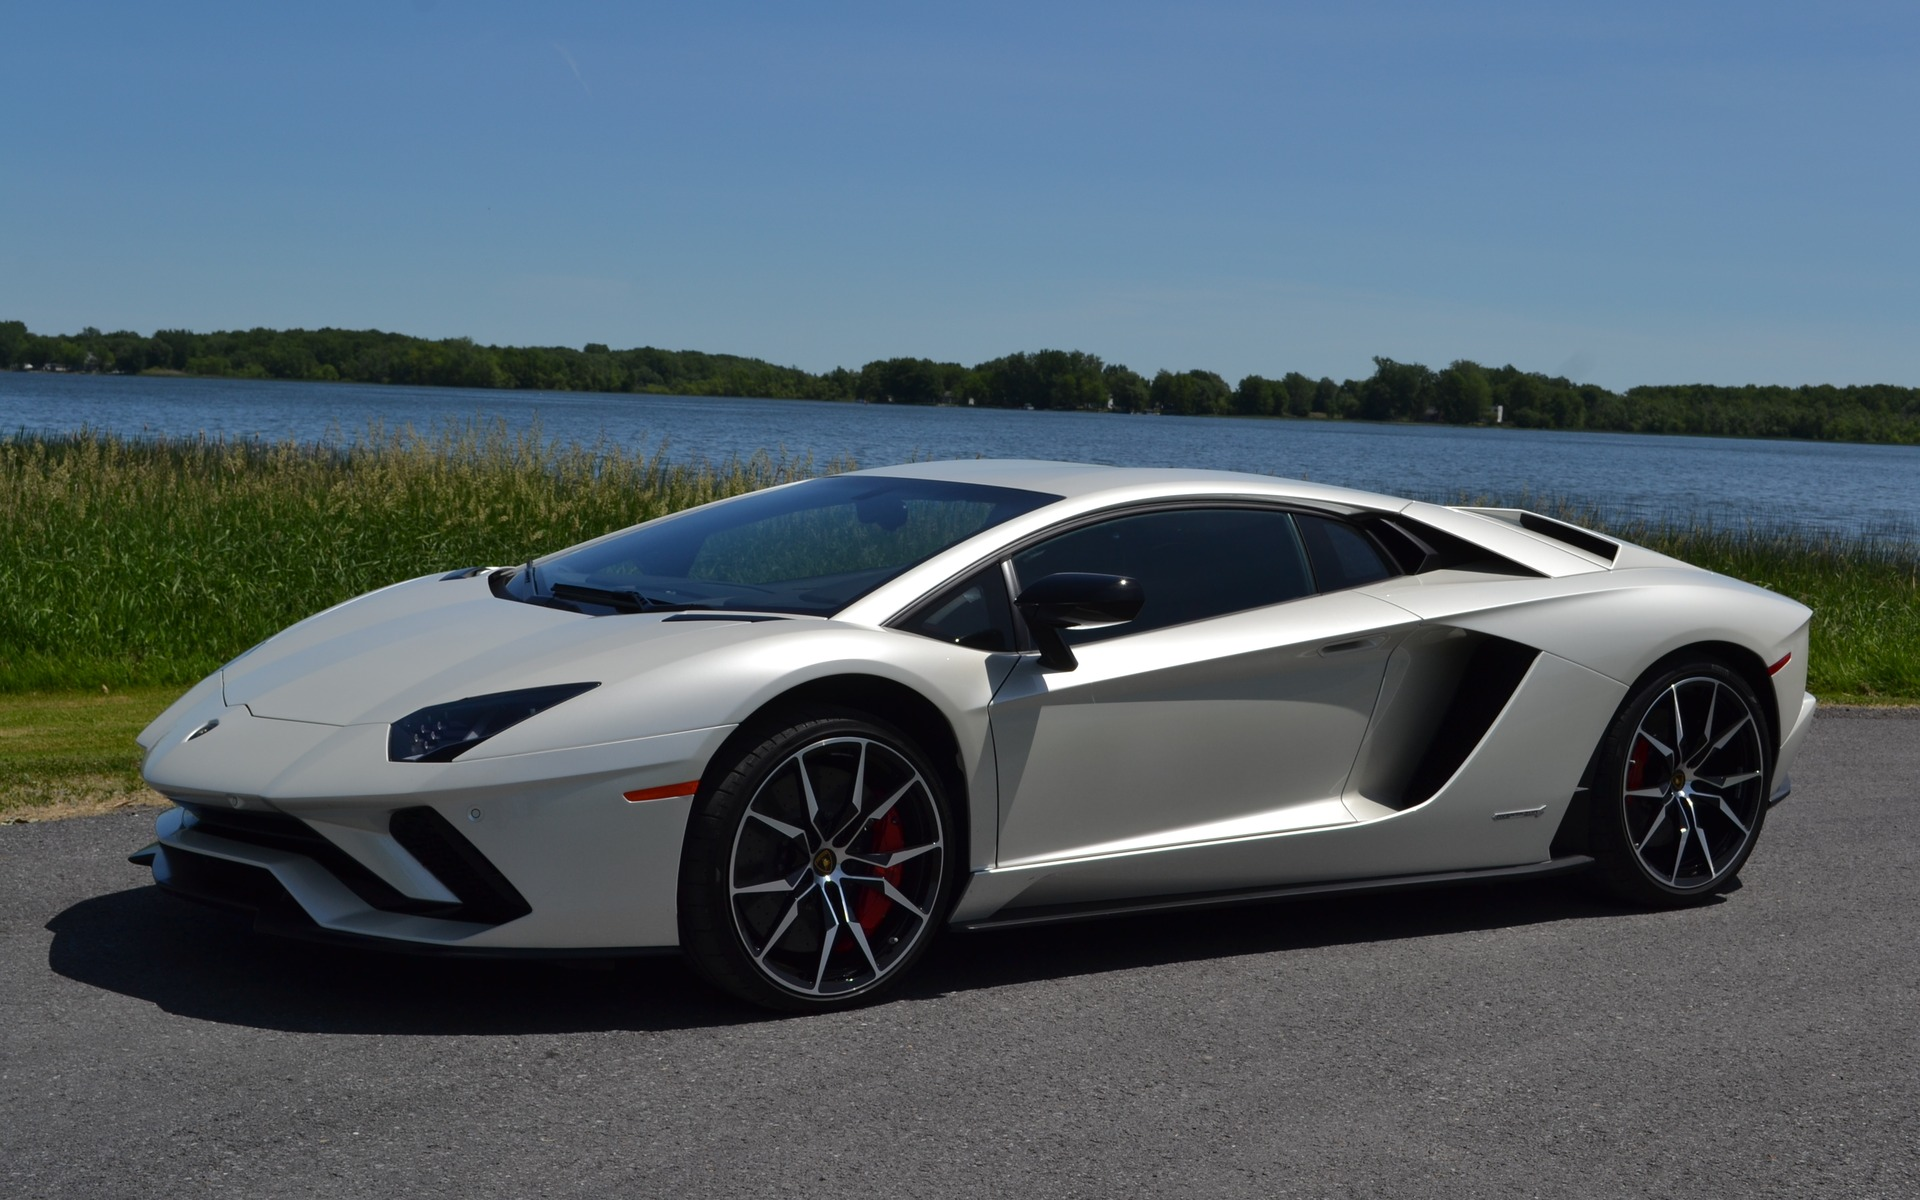 2018 Lamborghini Aventador News Reviews Picture